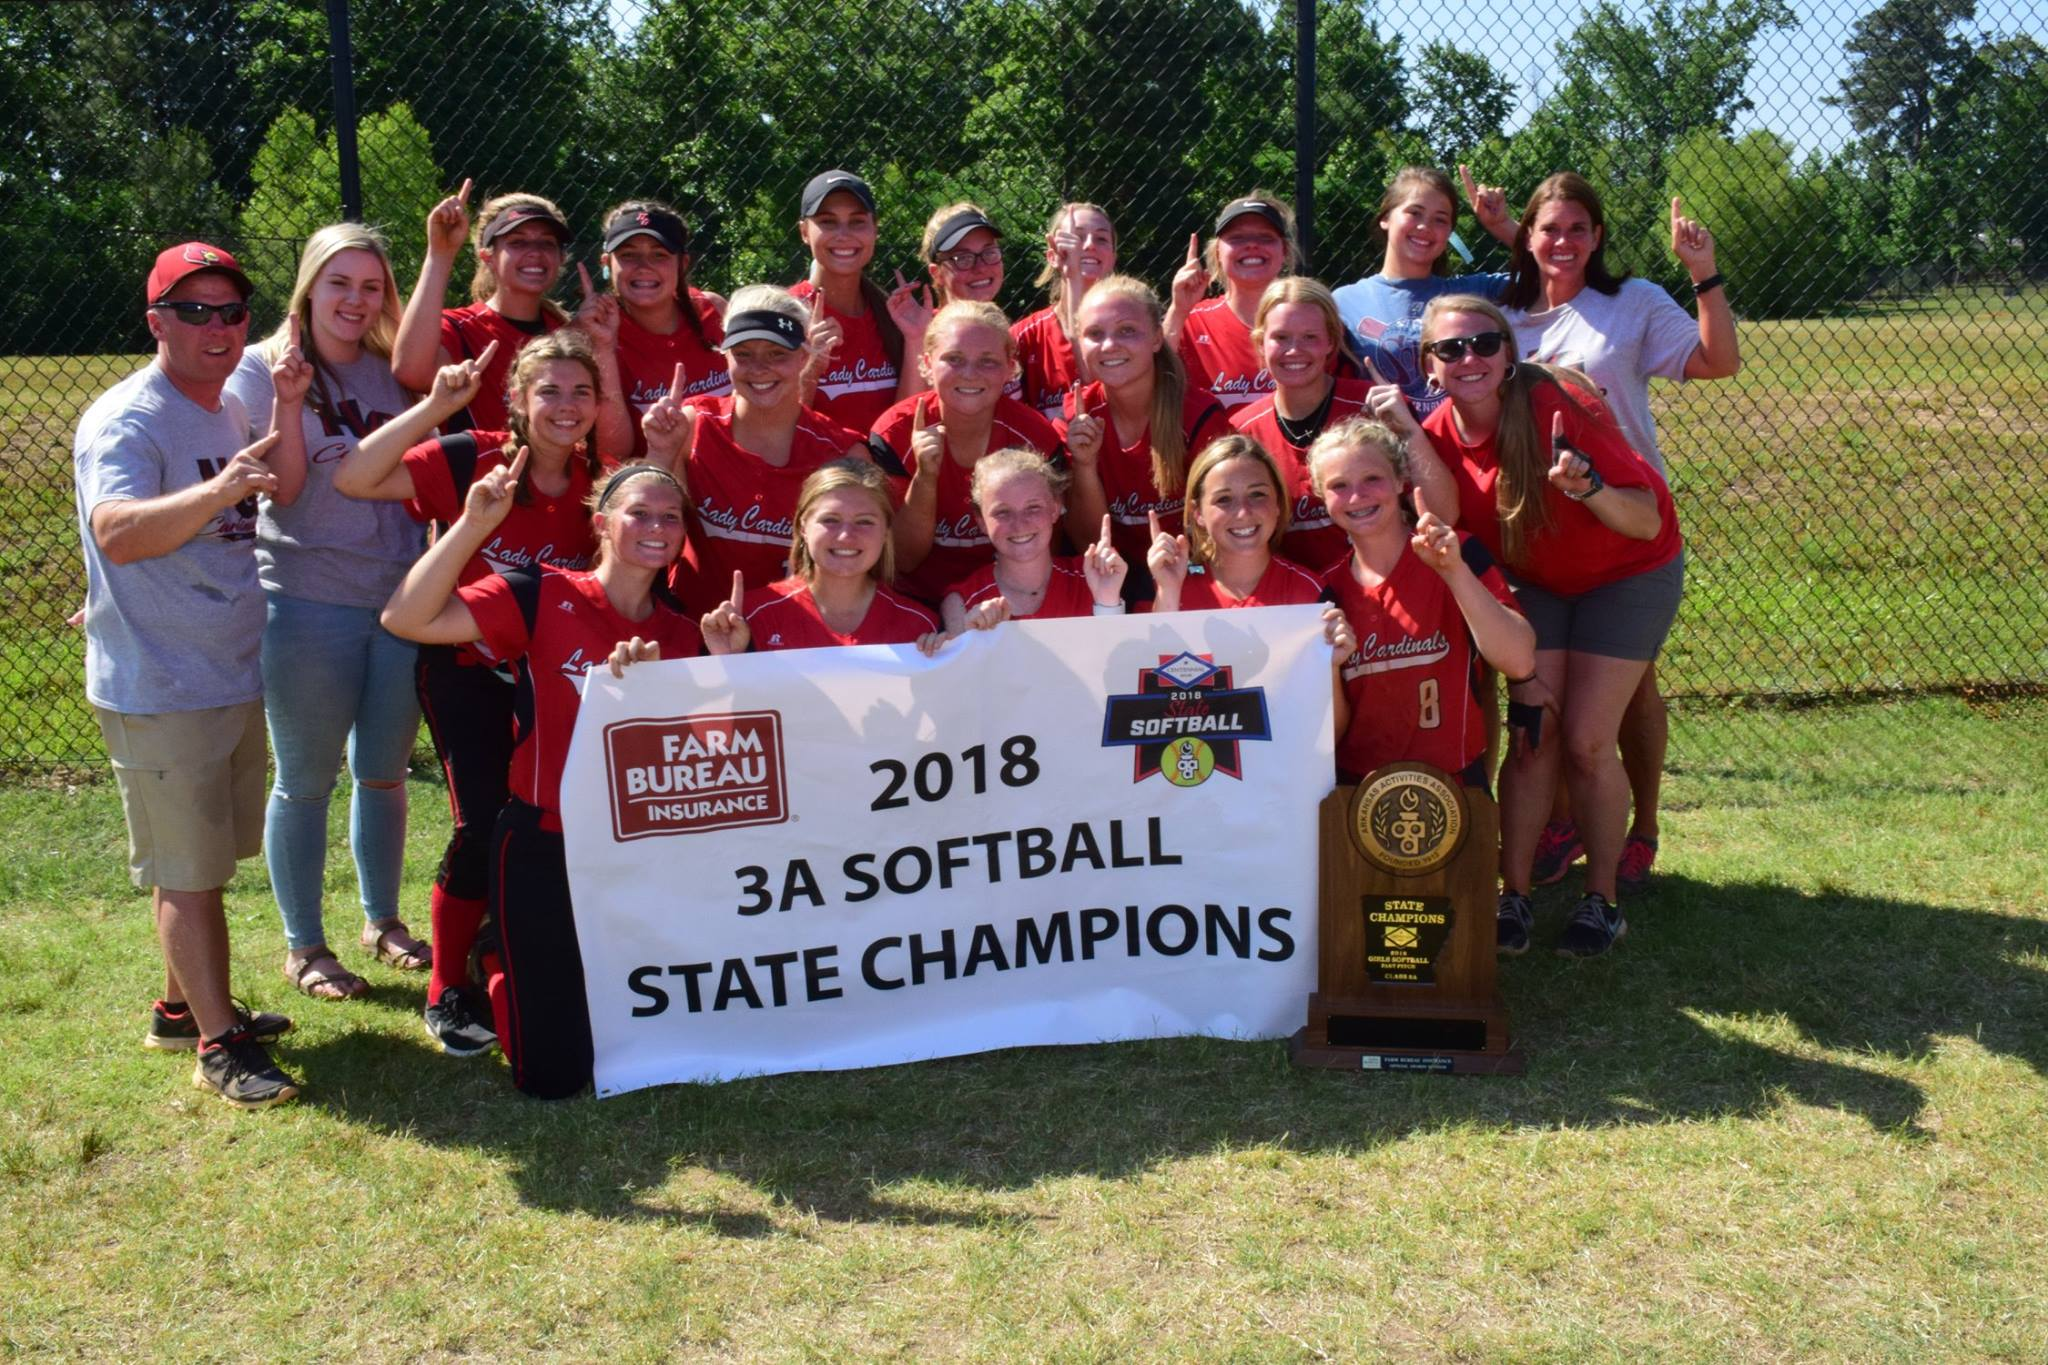 Lady Cards take down defending champs for 5th title